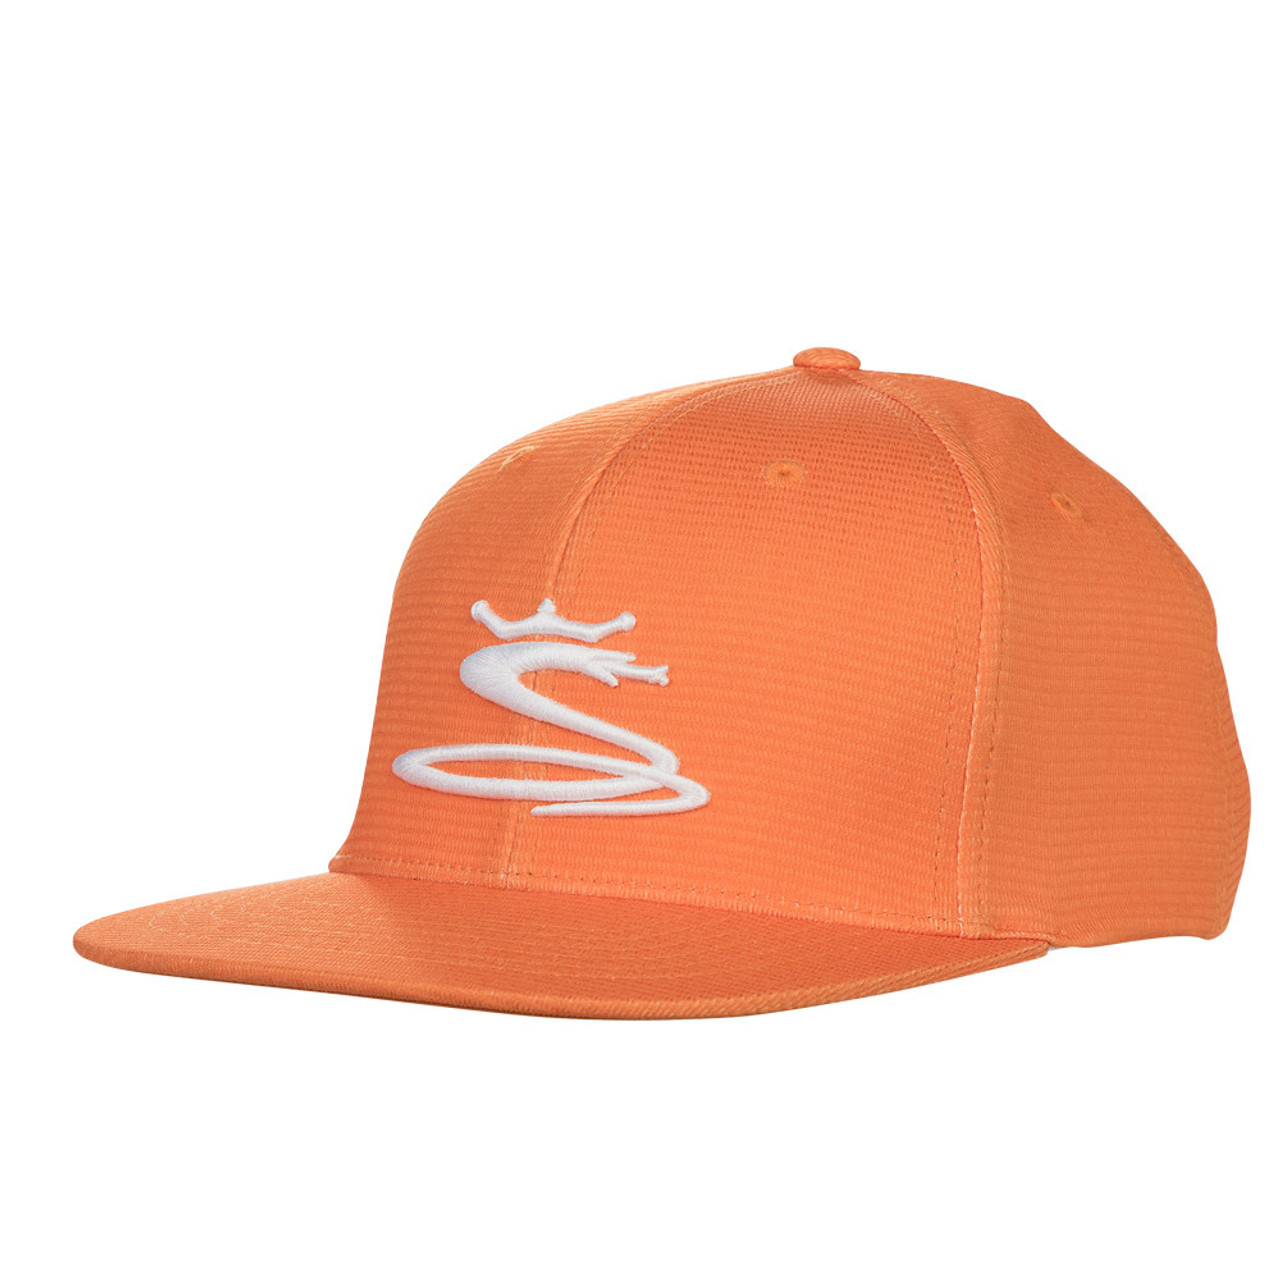 Cobra Tour Snake Snapback Caps - Vibrant Orange